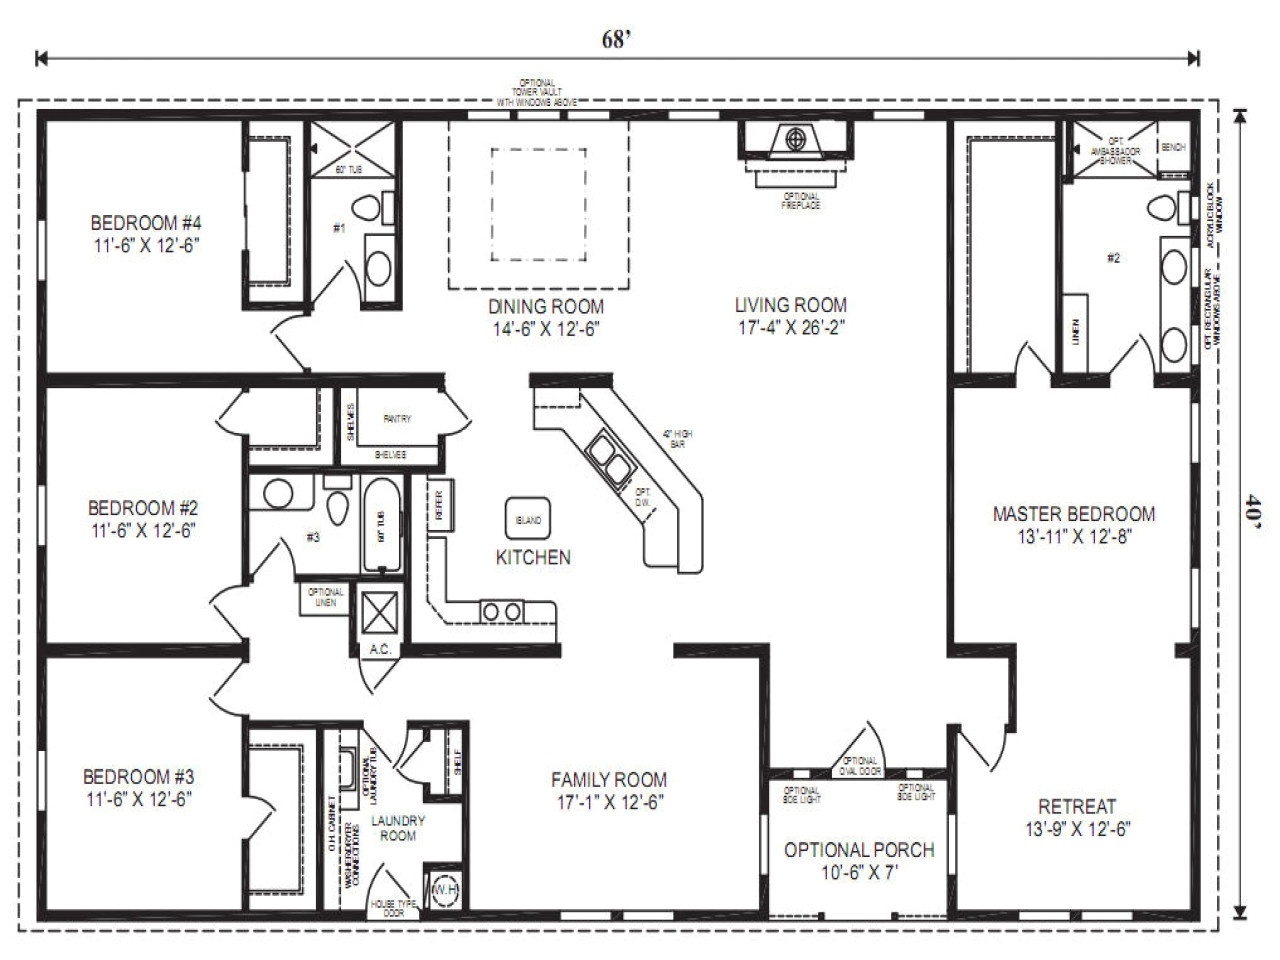 afefe0a349f6ad09 double wide mobile homes mobile modular home floor plans